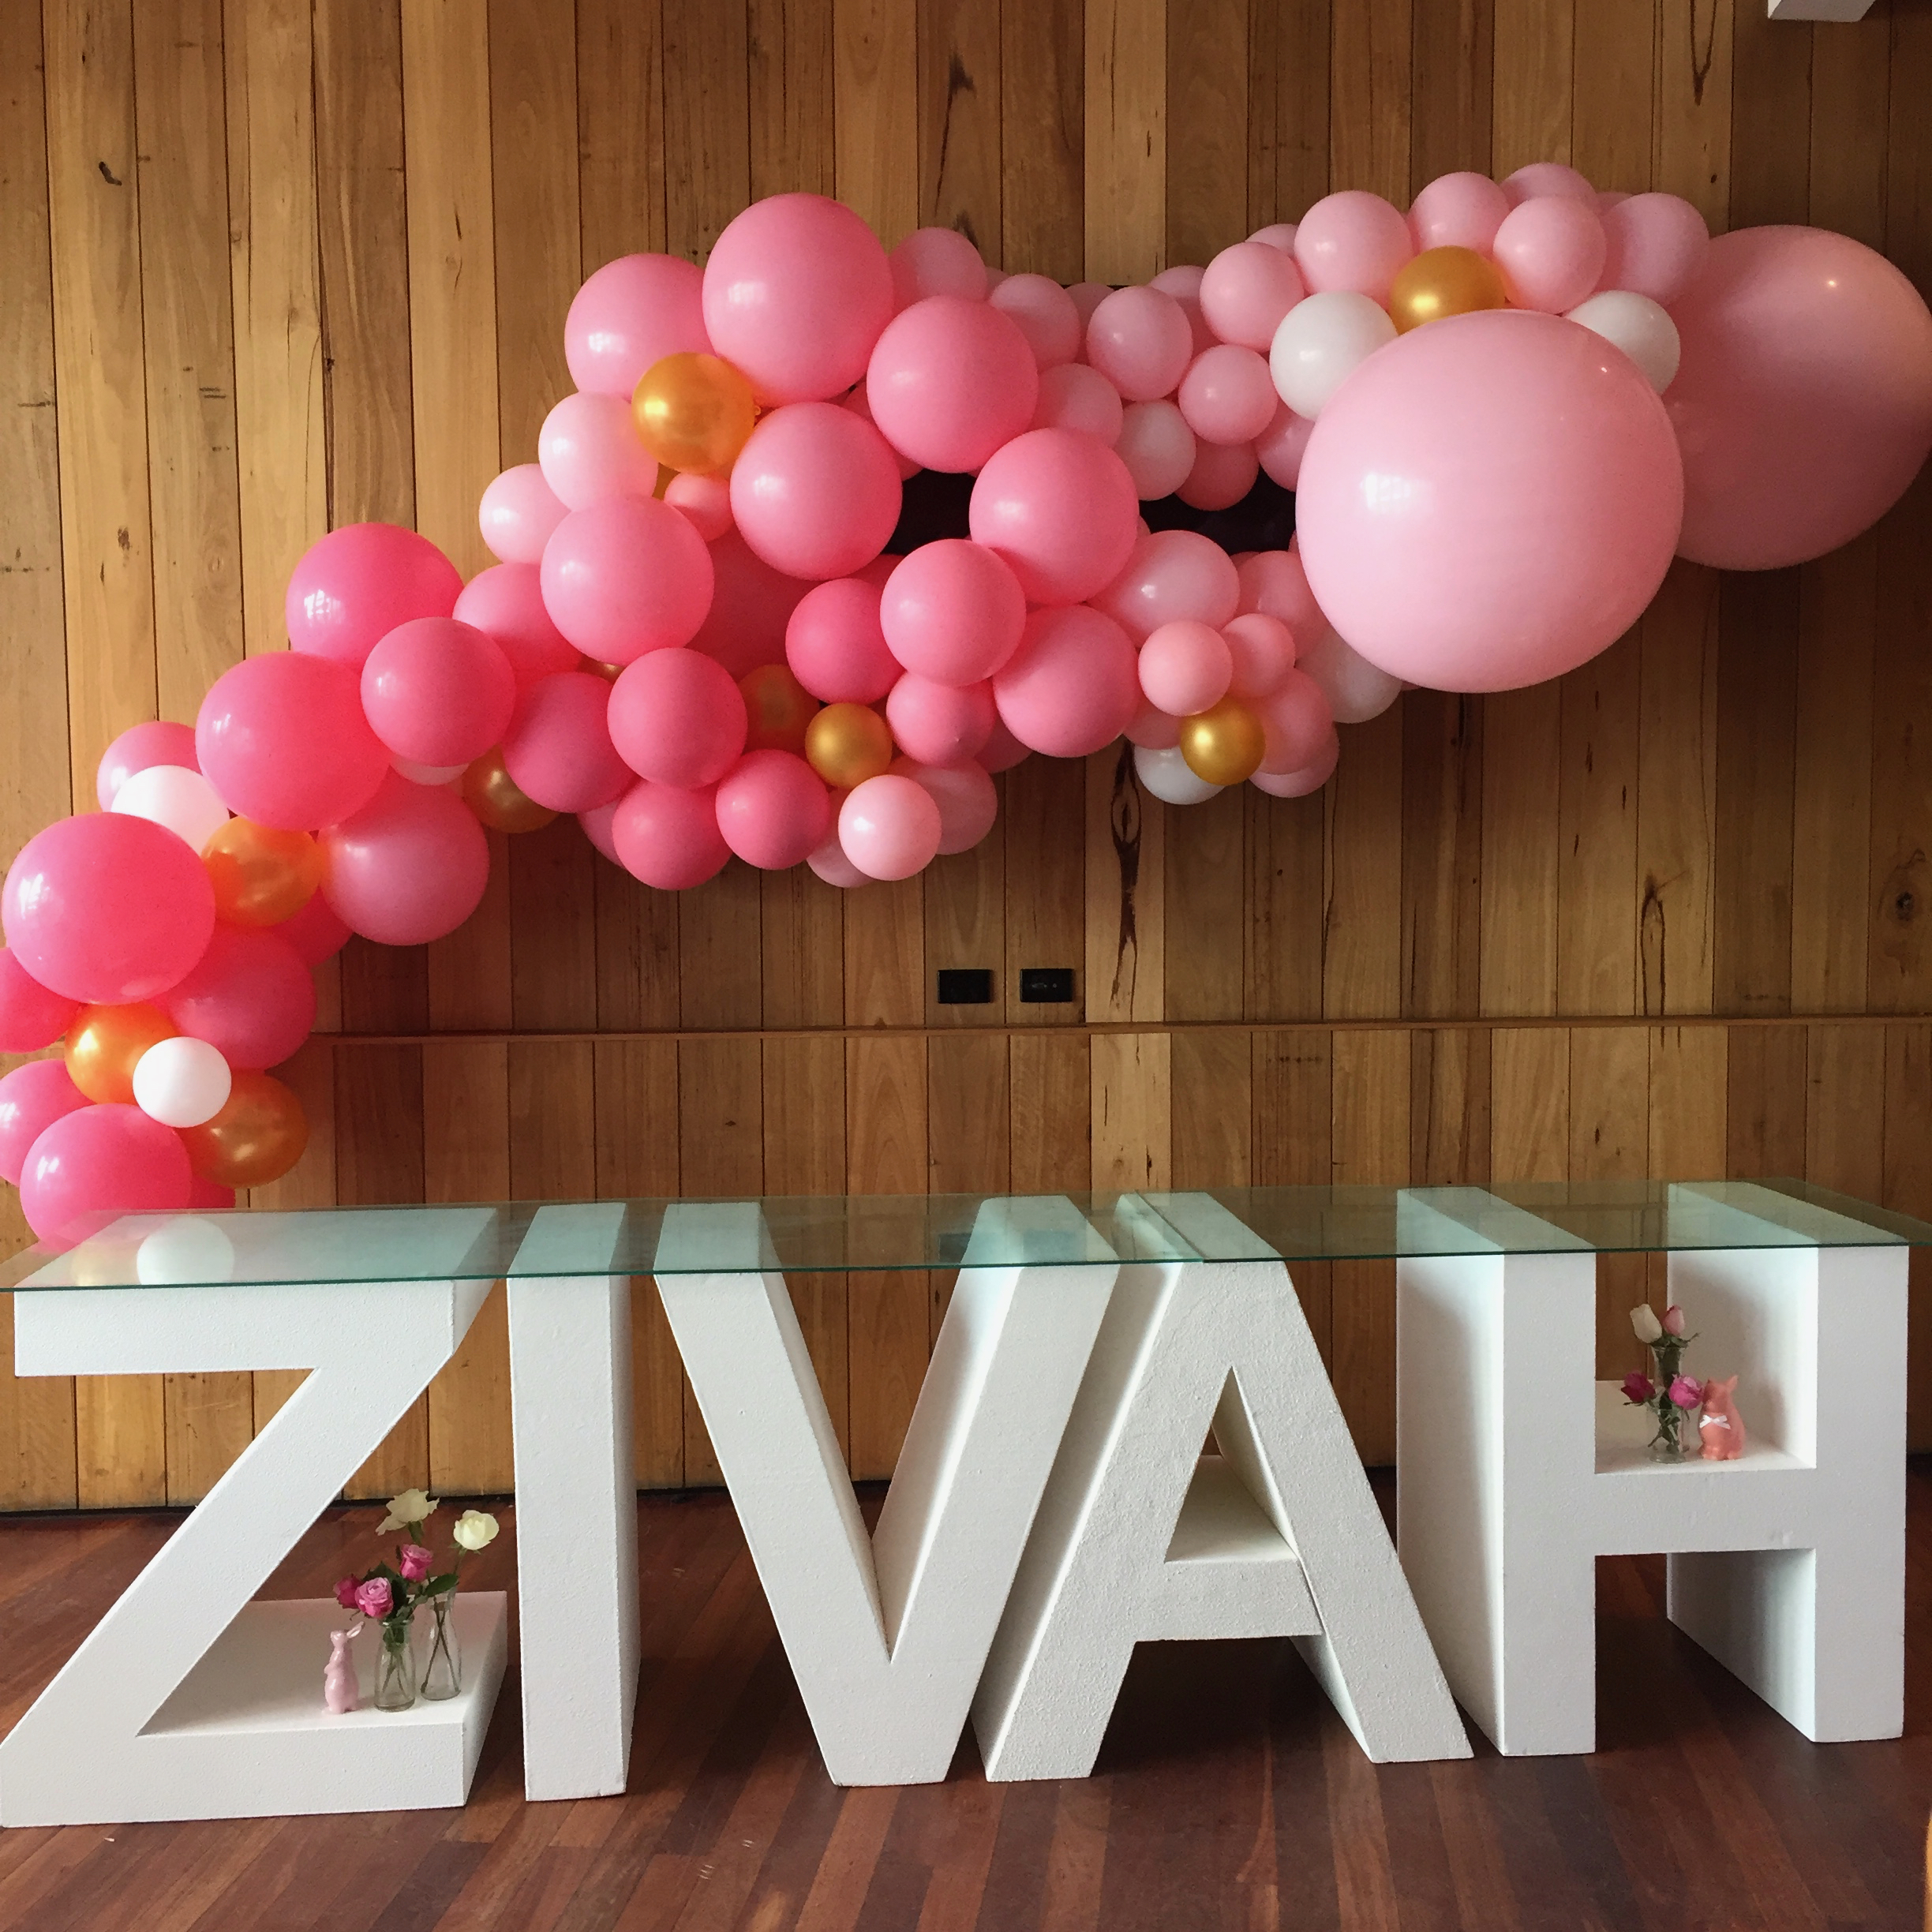 Zivah's first birthday - REQUEST A QUOTE